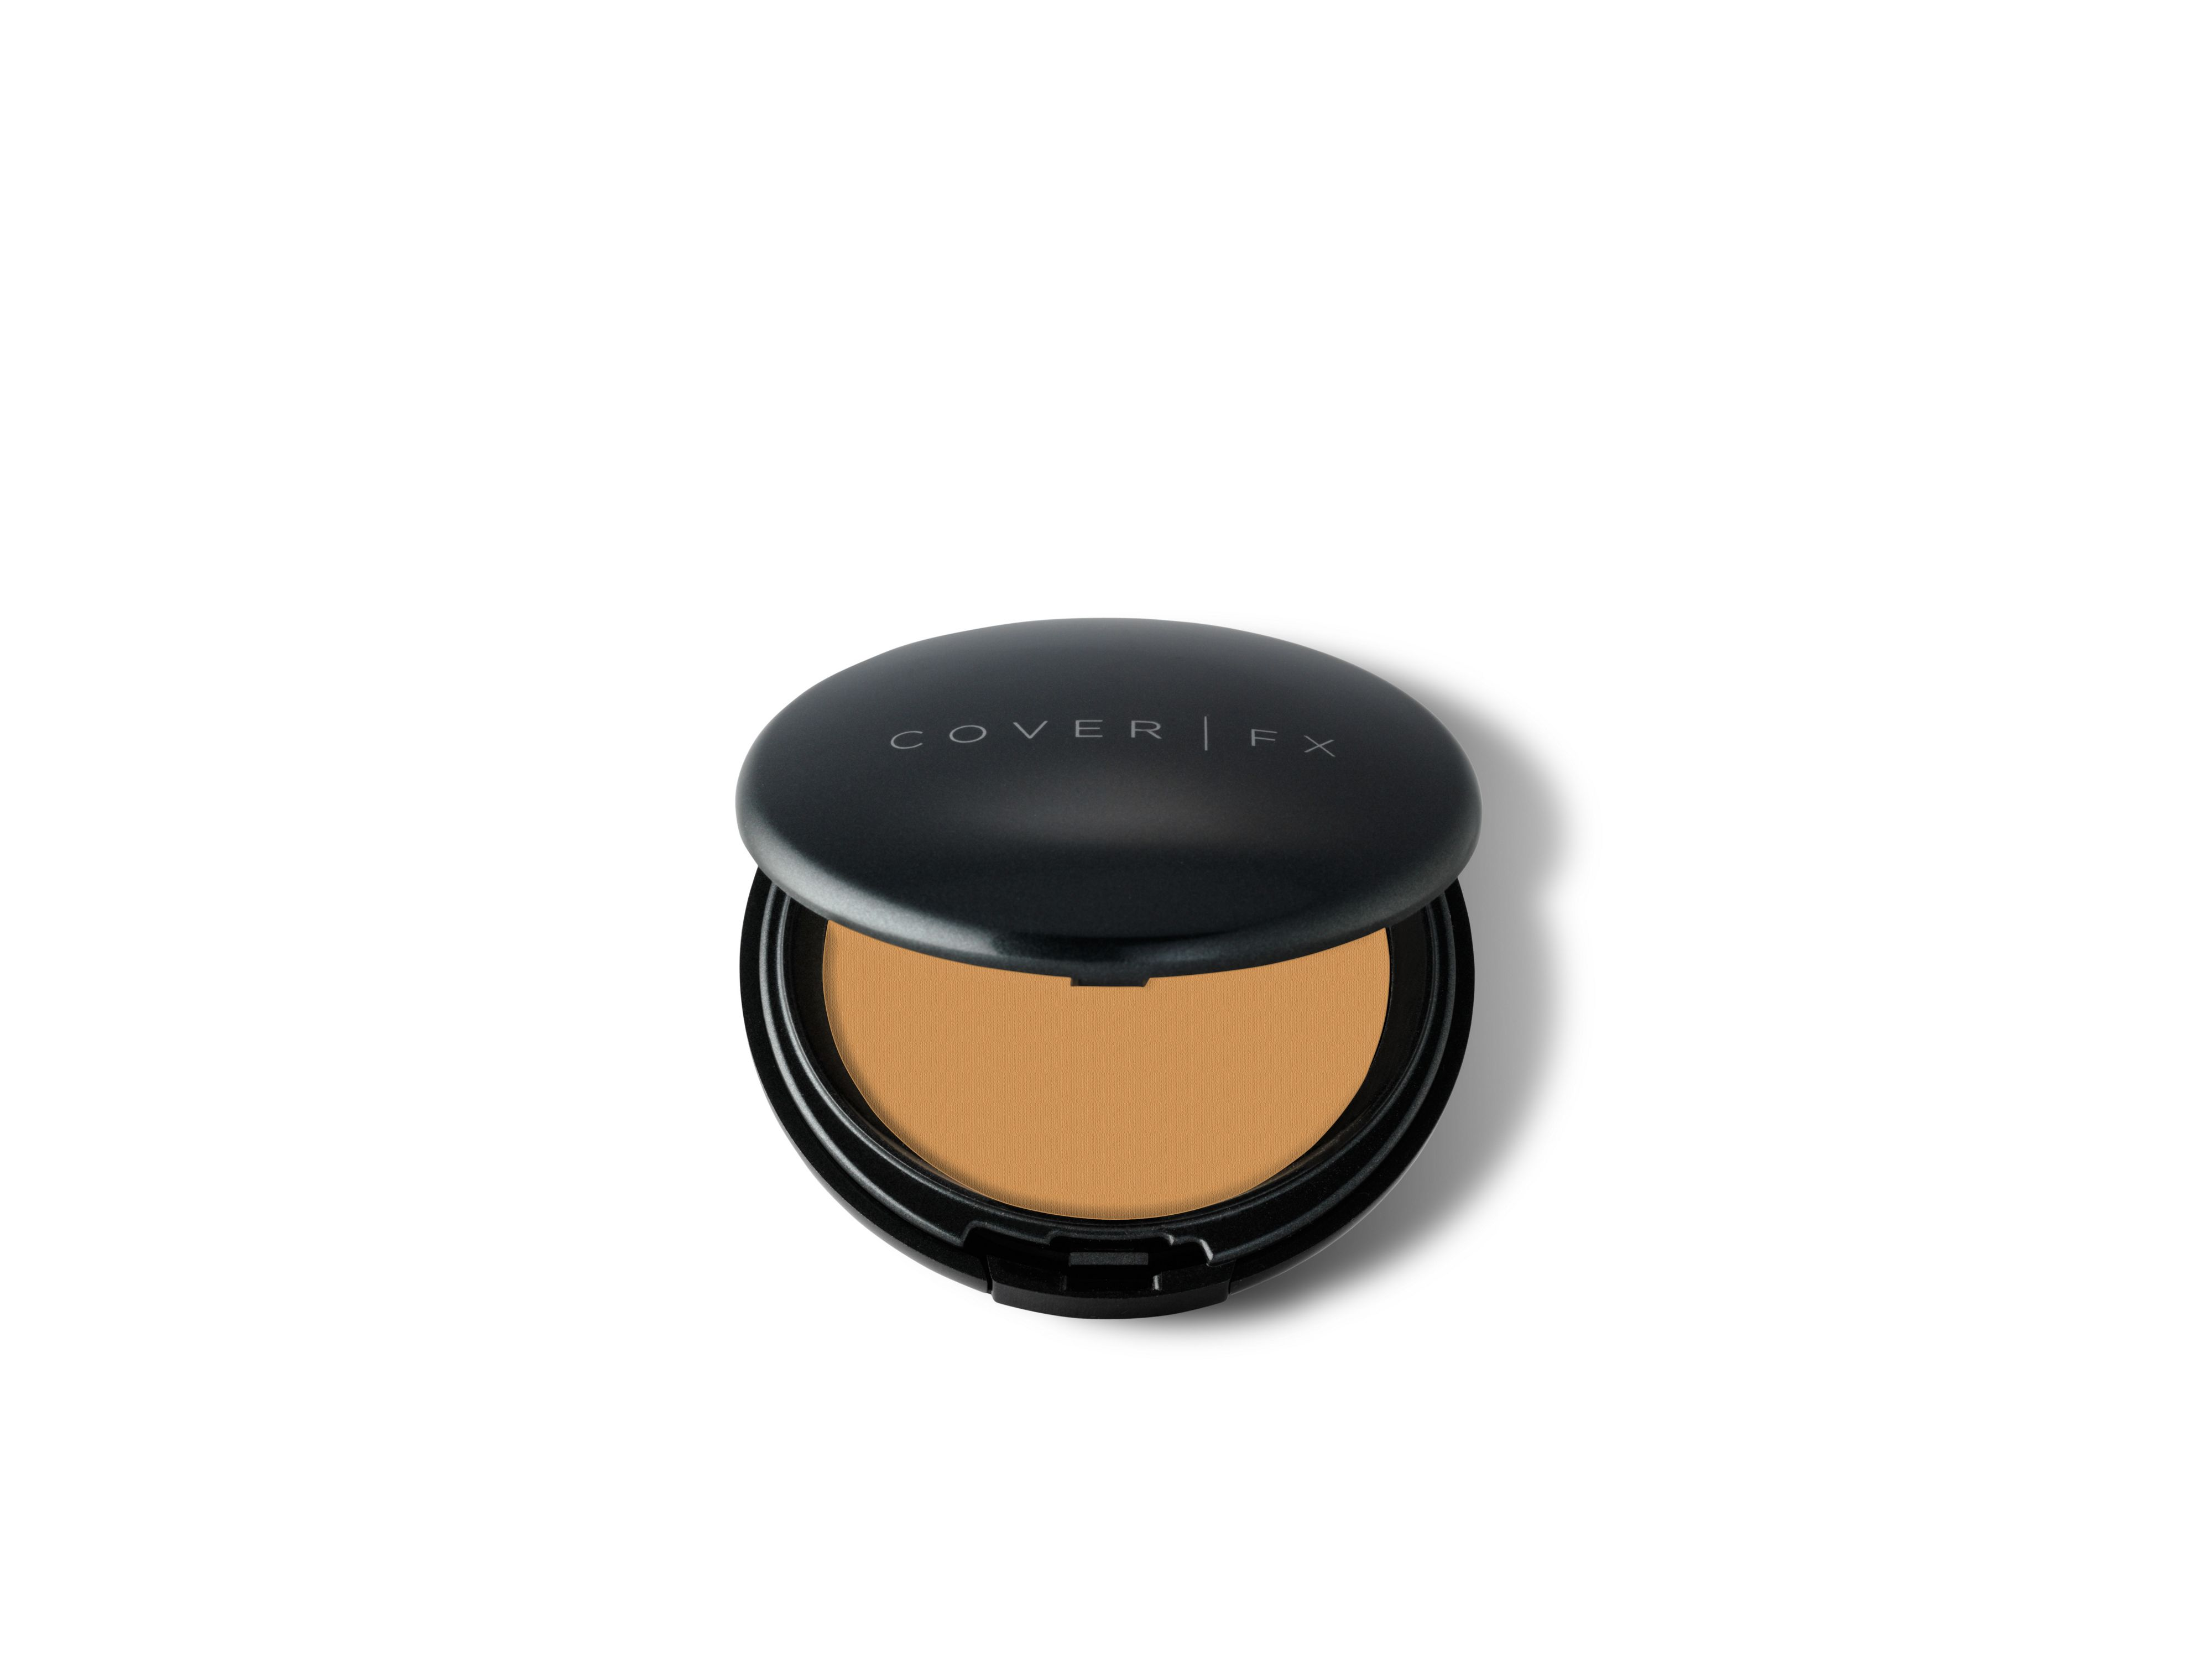 Cover FX Cover FX Pressed Mineral Foundation, G160